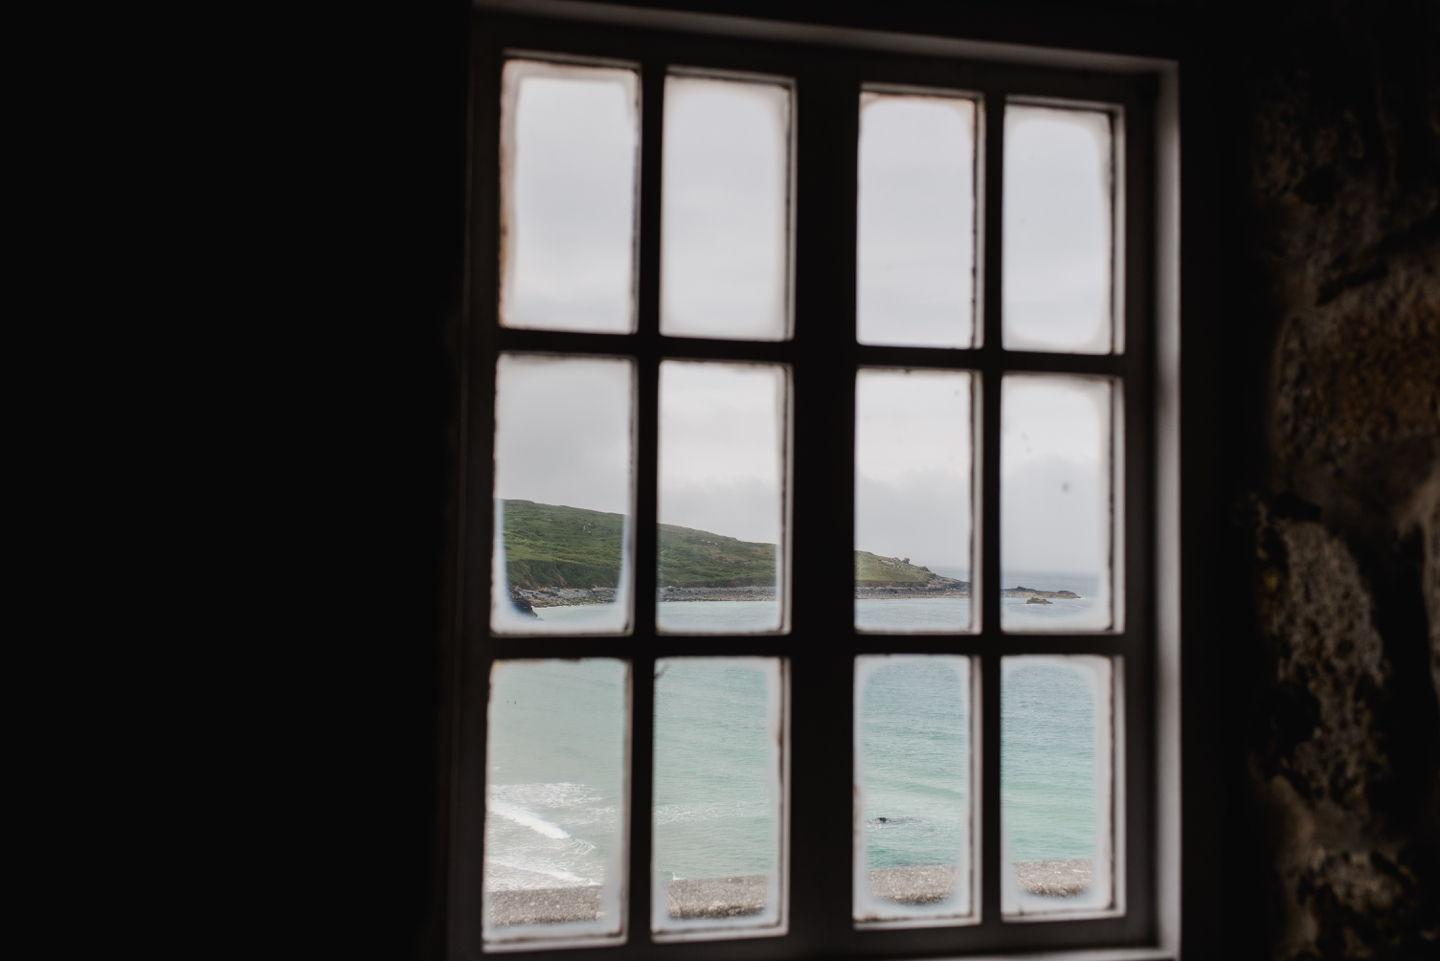 About - A long weekend in a beachside cottage overlooking St Ives Bay. Explore this part of Cornwall with a small group of like minded photographers and leave feeling rested, grounded and inspired.